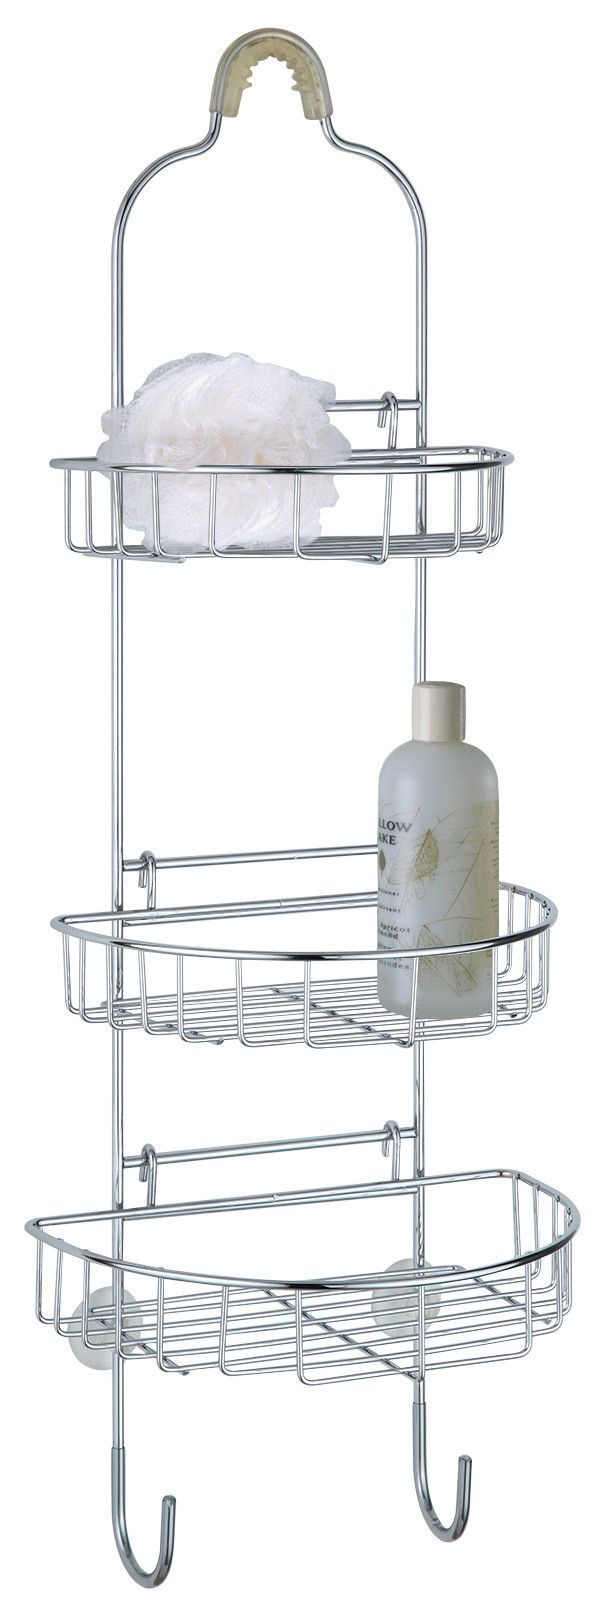 Low Hanging Shower Caddy | Sevenstonesinc.com